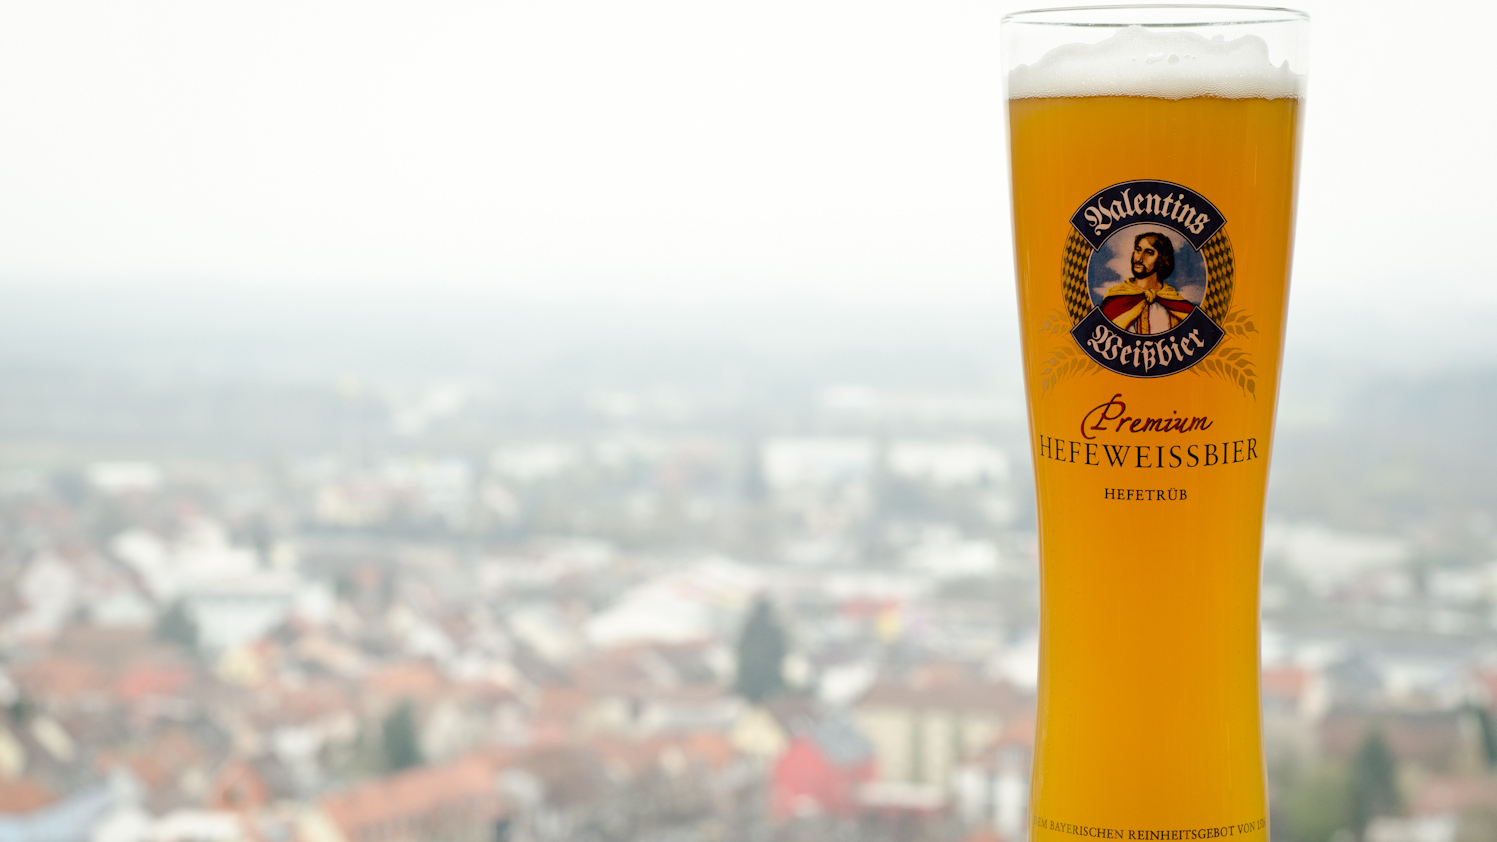 Hofstetten Brewery revives 300 year old beer